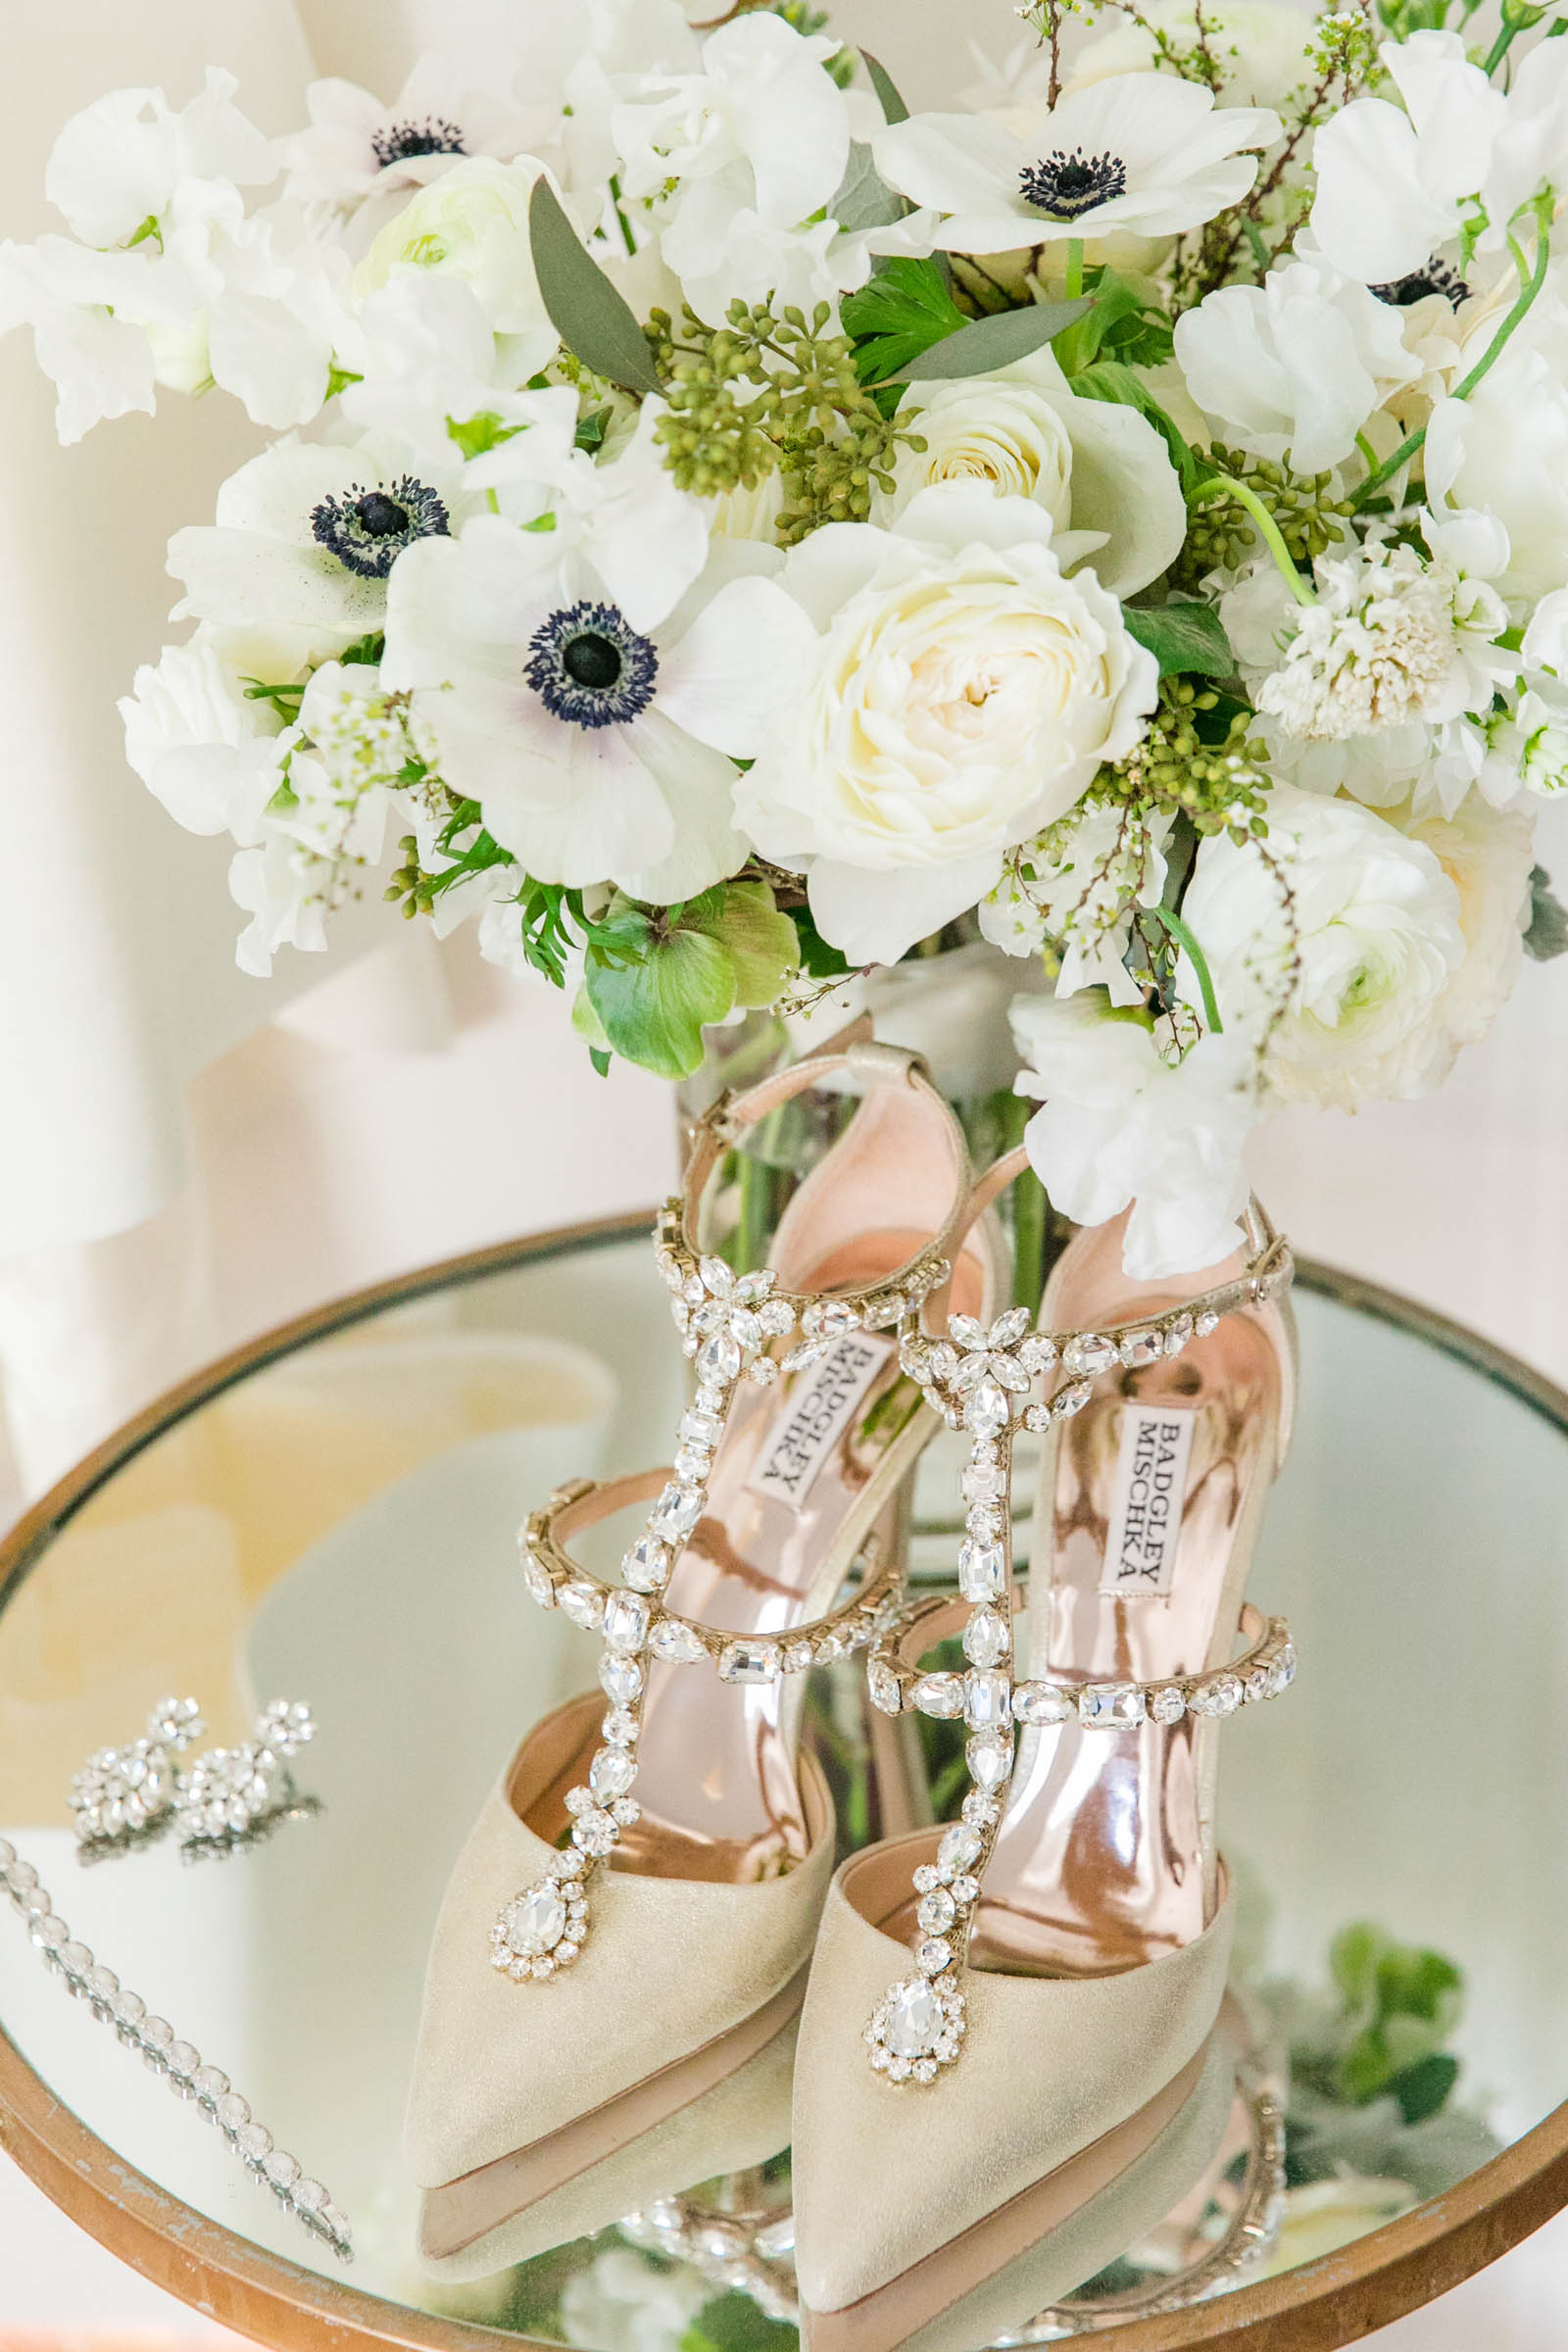 Shoes and earrings with bouquet in mirror - photo by Dana Cubbage Weddings